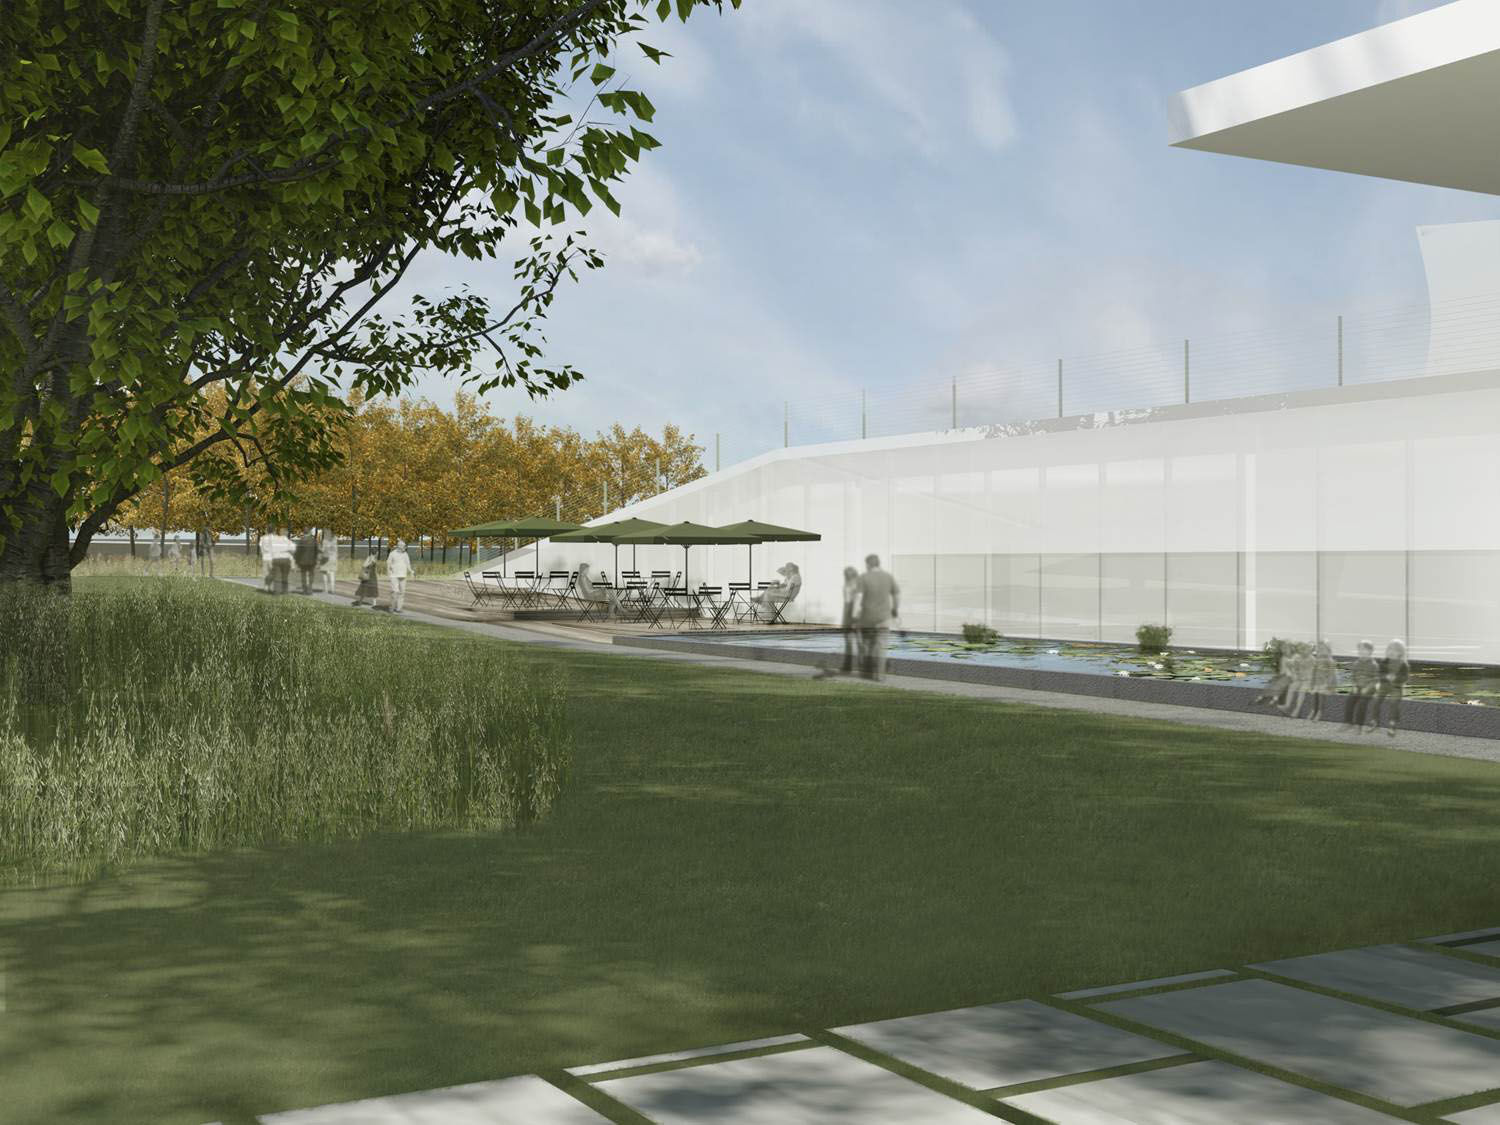 The Kennedy Center said visitors will be able to use the space as a place to gather and learn about the arts. (Courtesy Steven Holl Architects via the Kennedy Center)